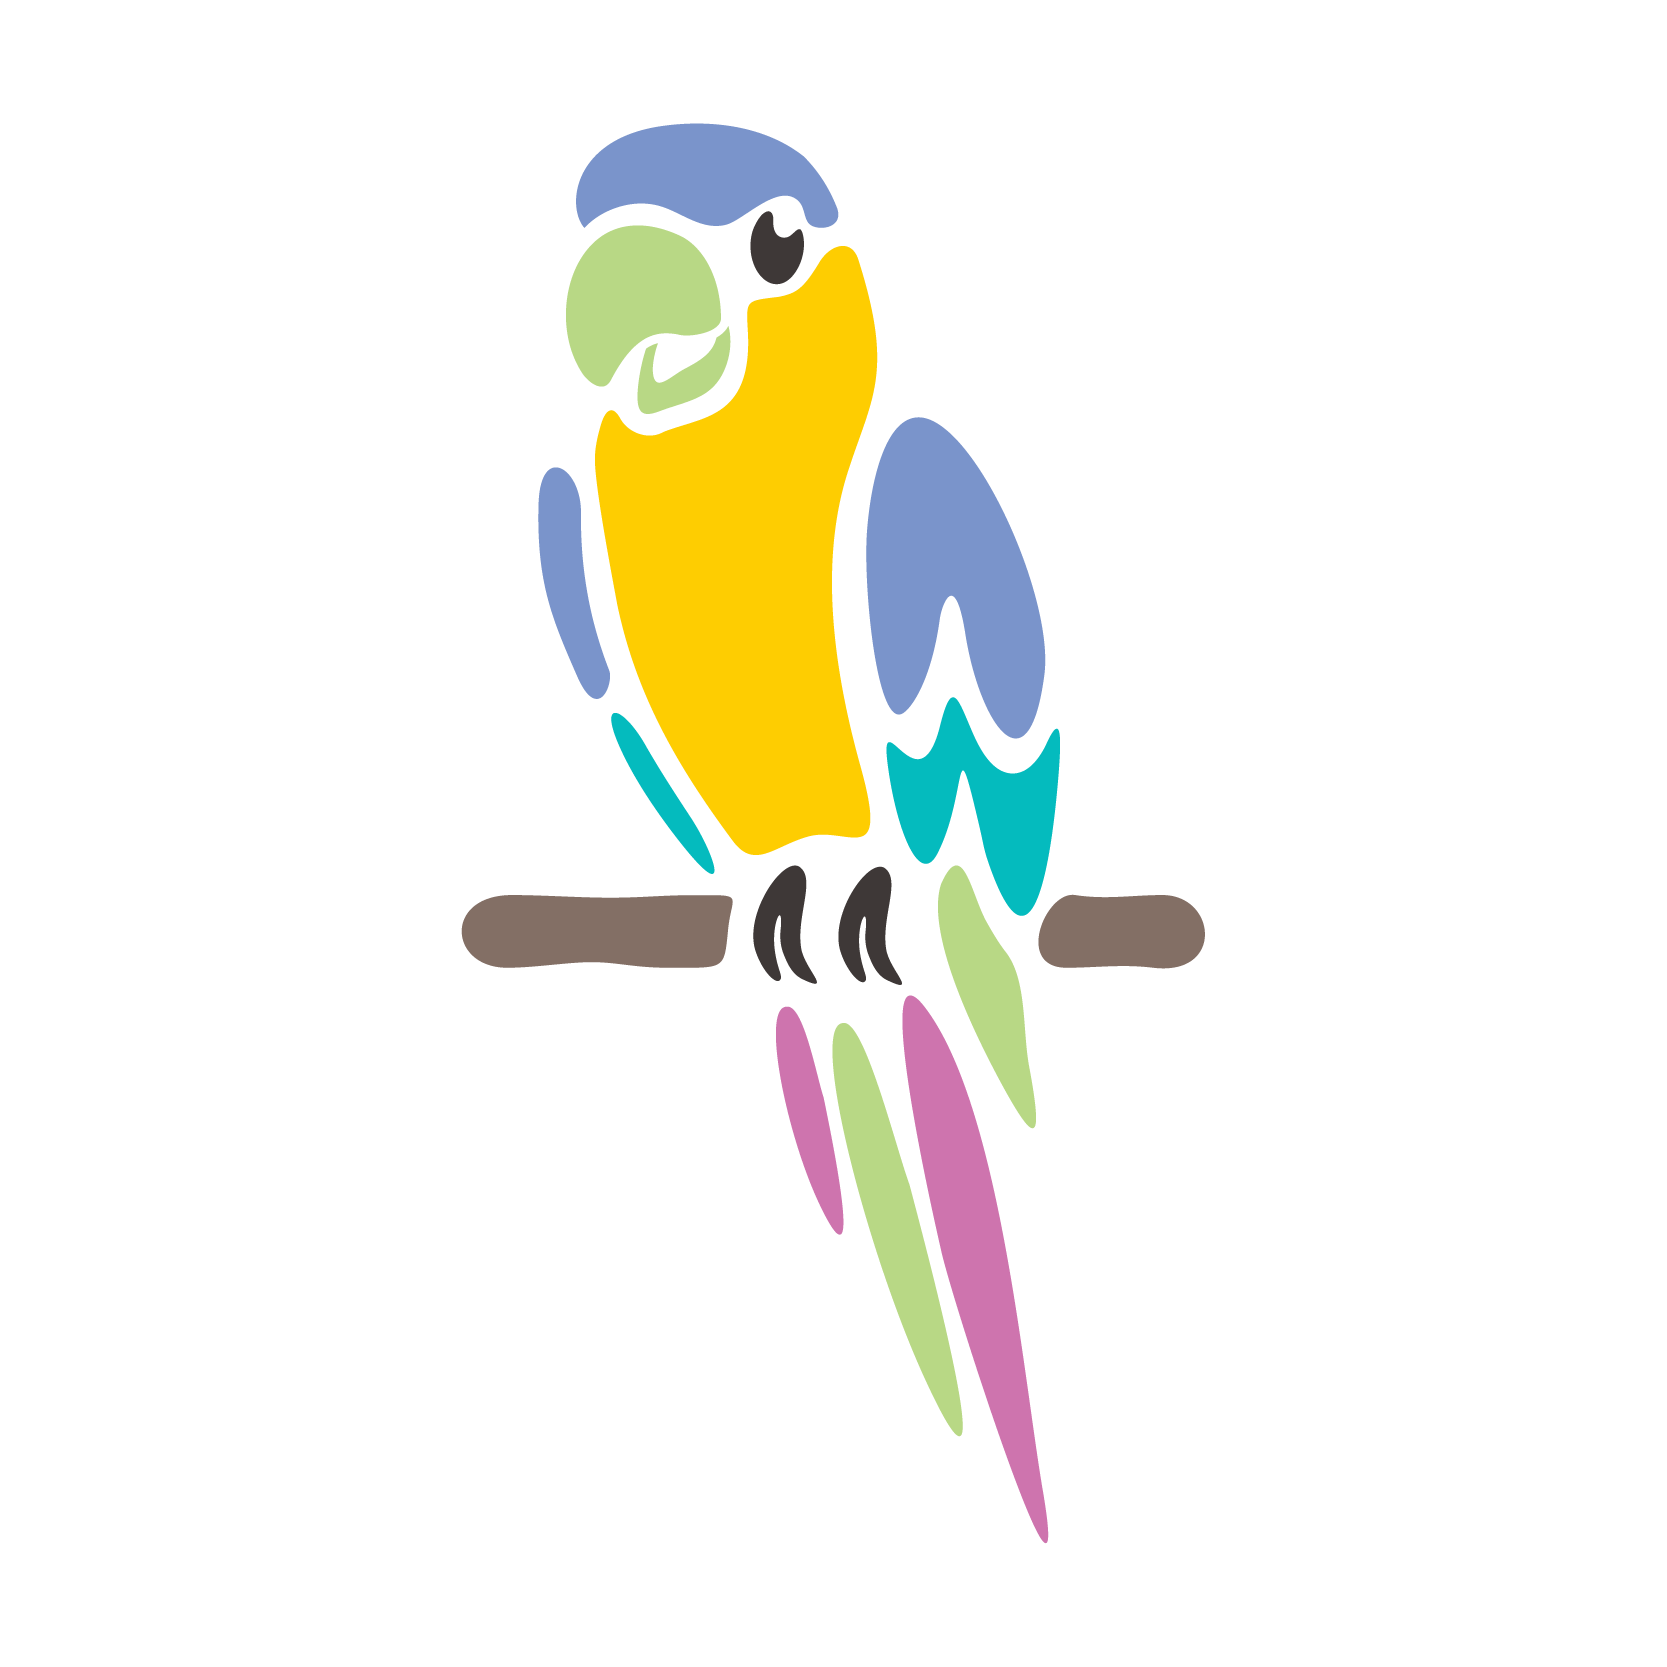 Draw a parrot with a character that will live on a mobile screen